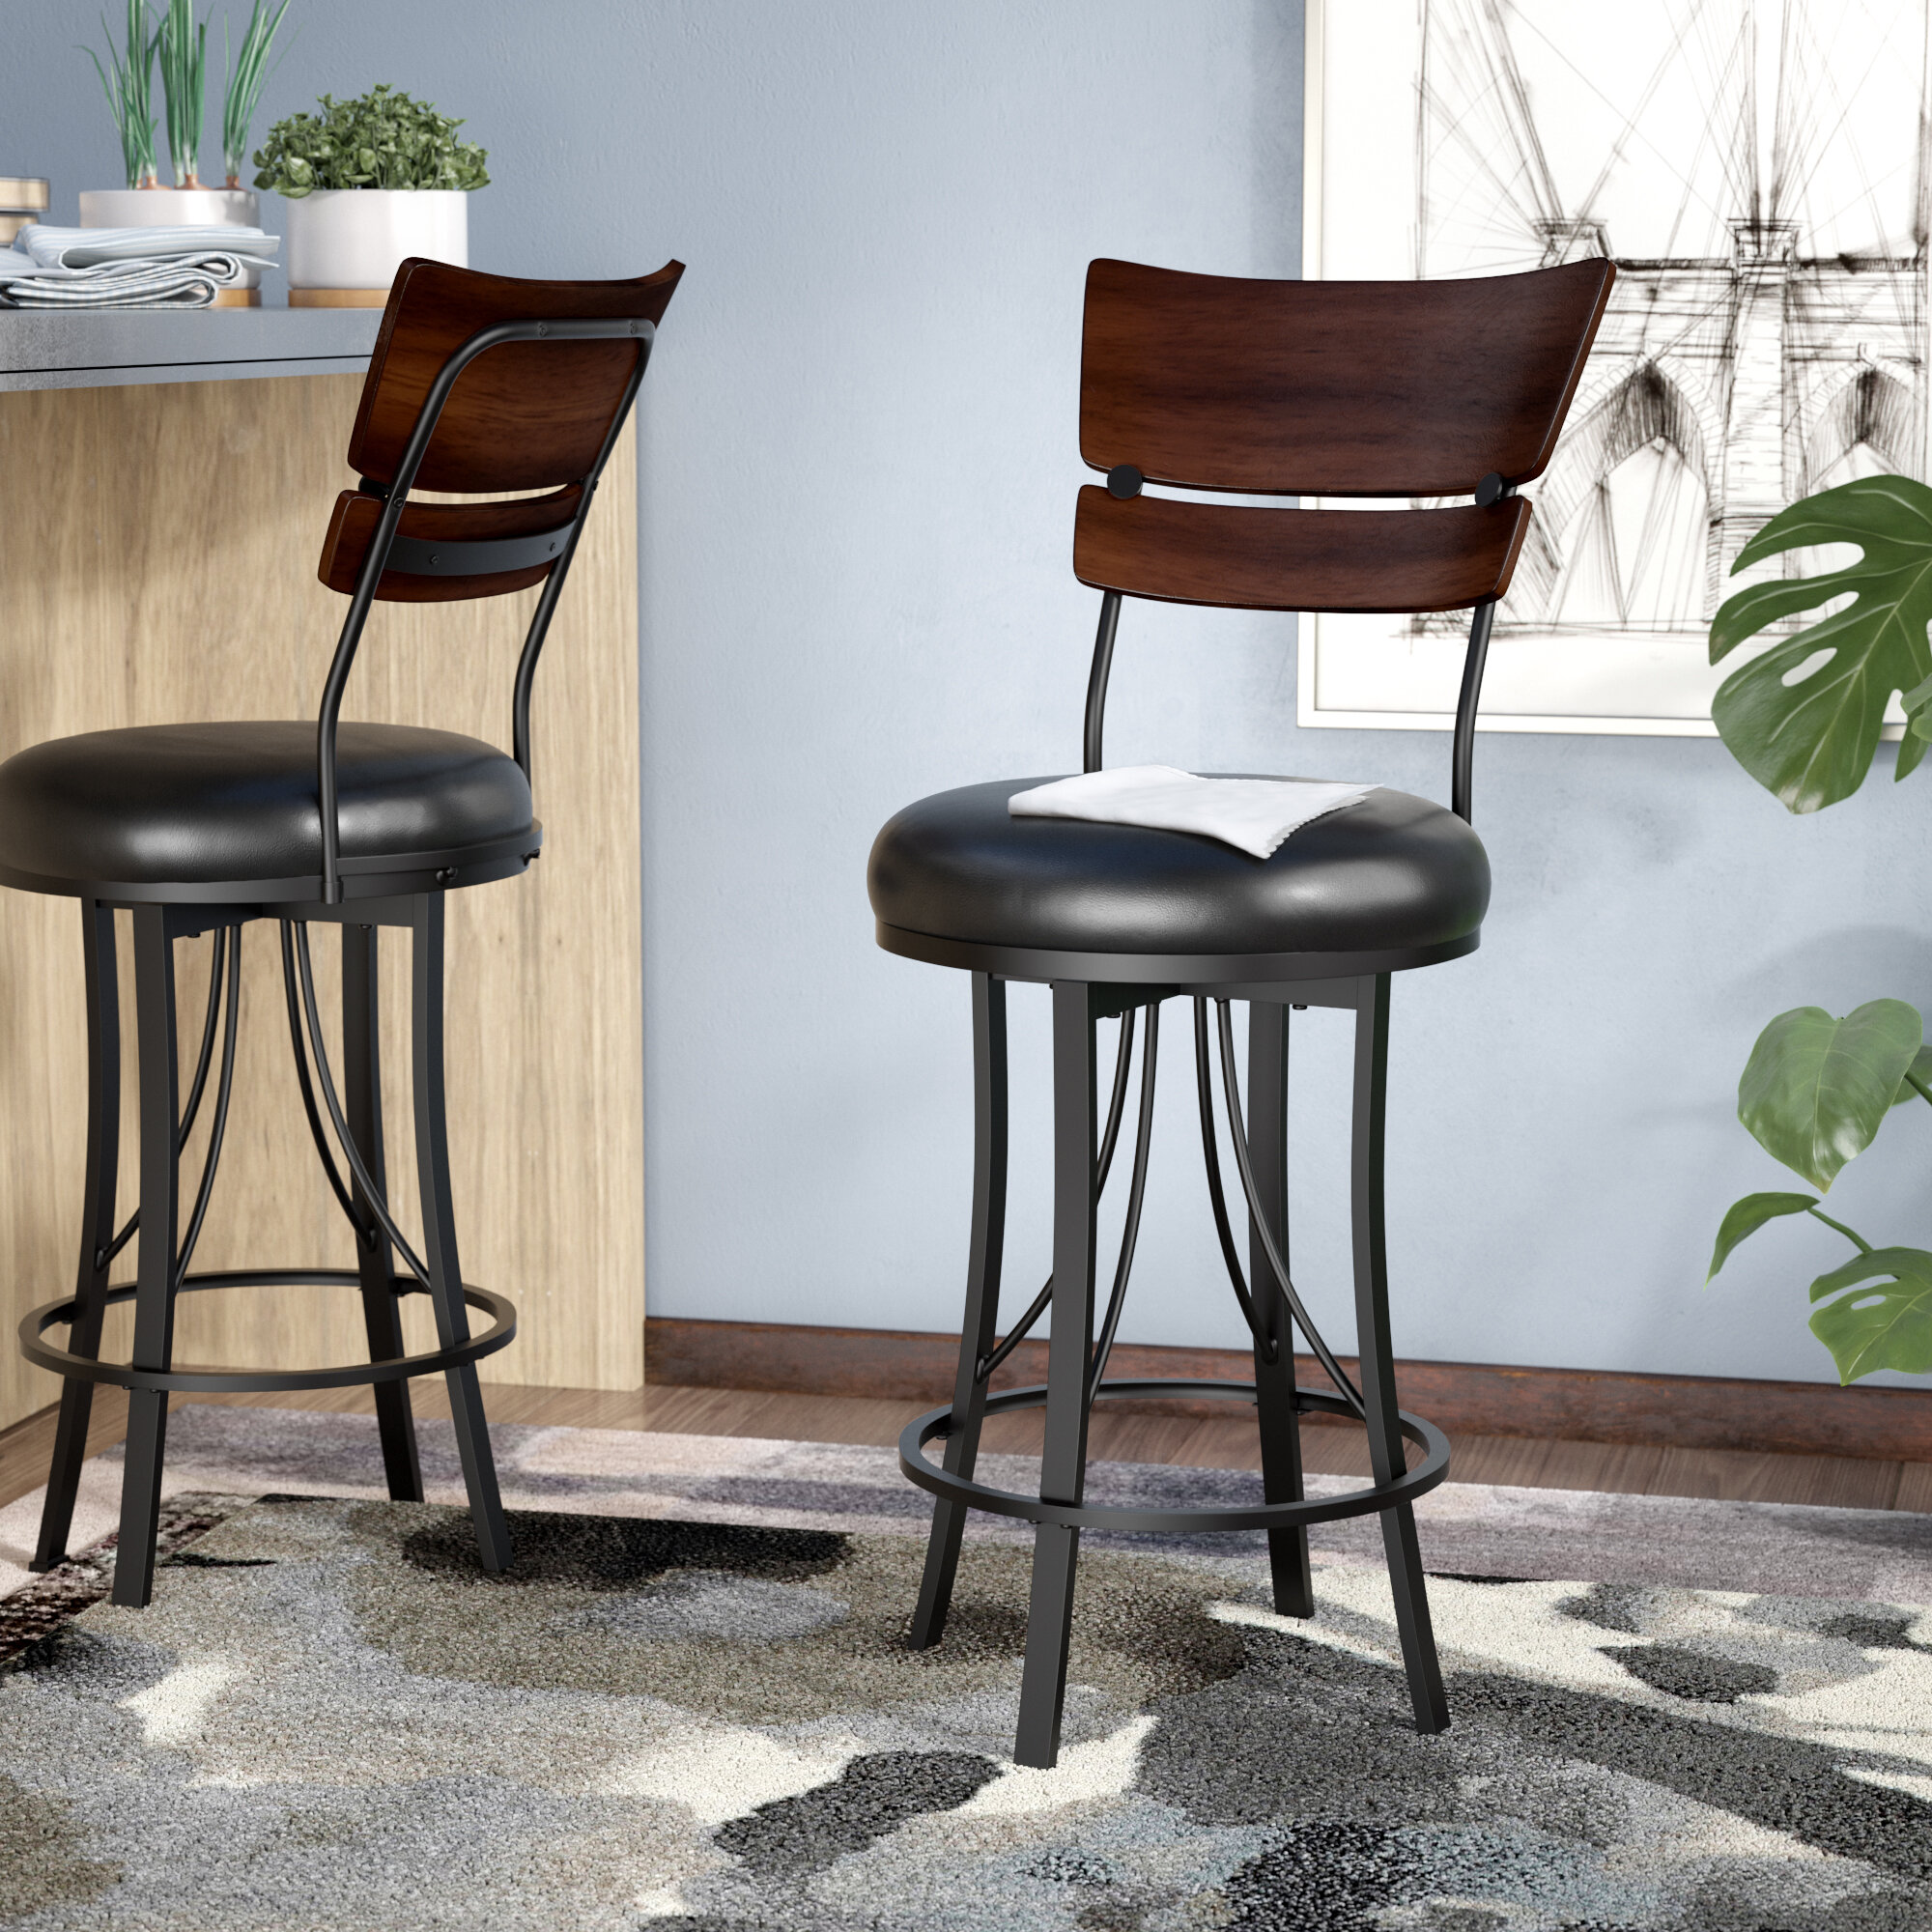 Peachy Chatham Bar Counter Swivel Stool Ibusinesslaw Wood Chair Design Ideas Ibusinesslaworg